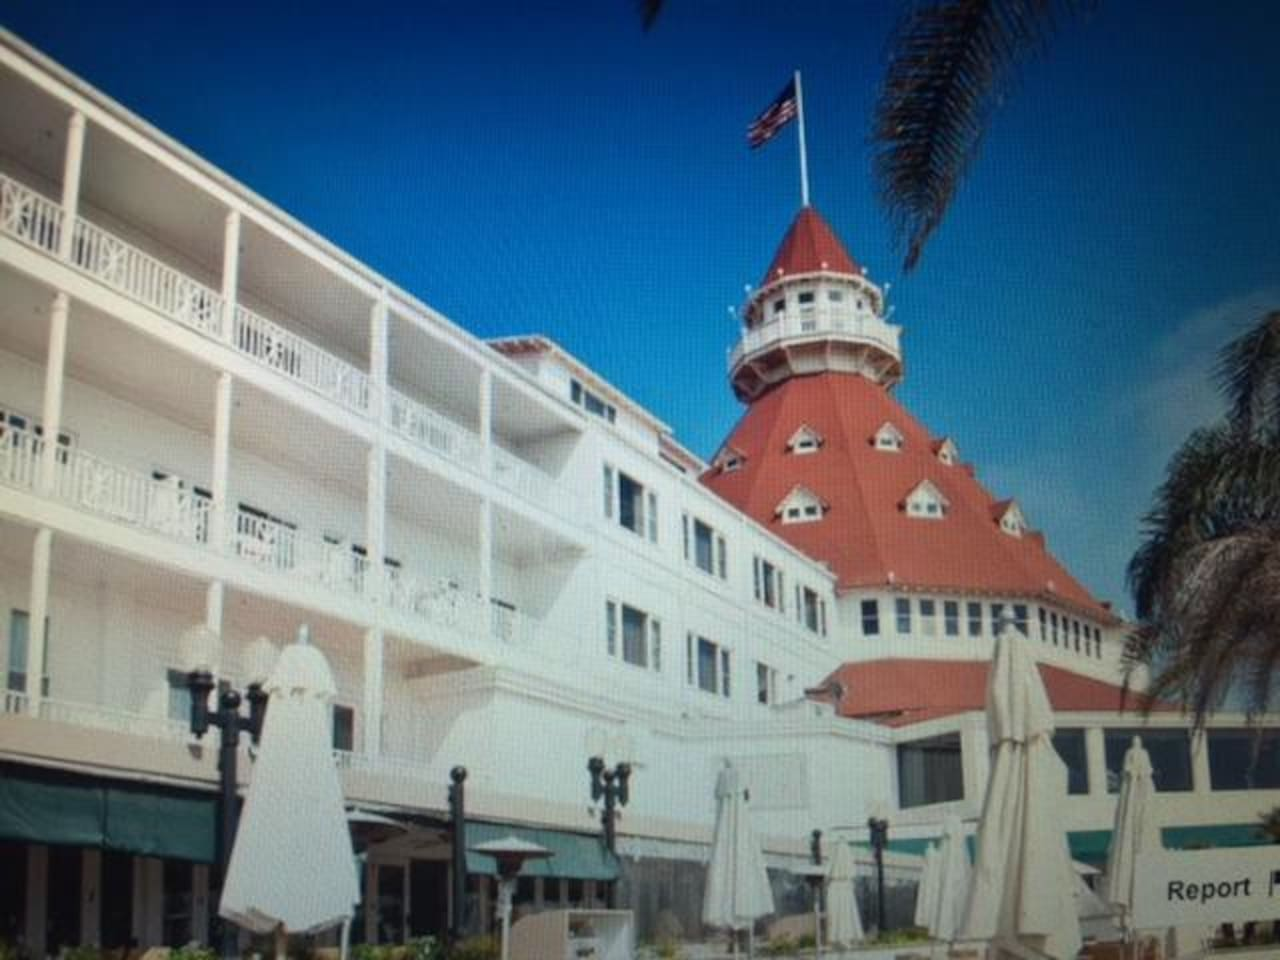 LOCATED DIRECTLY ACROSS THE STREET FROM HISTORICAL HOTEL DEL ON THE BEACH.  You  are staying at Coronado Beach Resort, across from the Hotel Del Coronado.